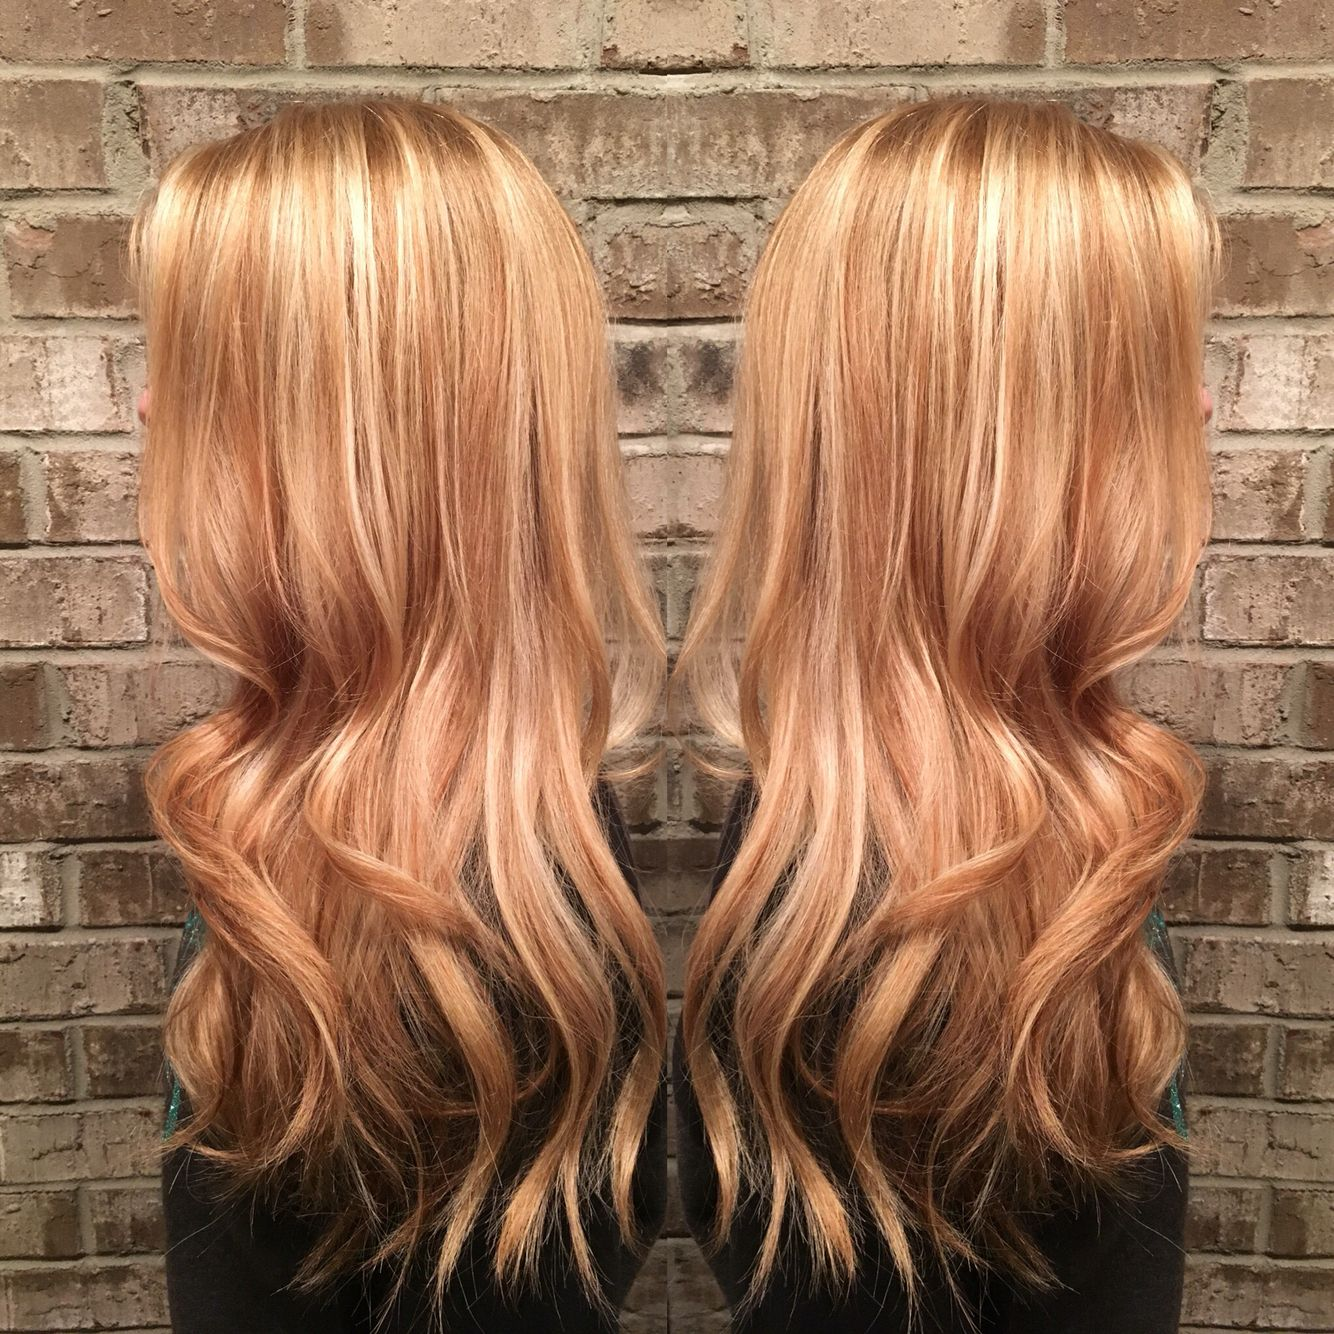 Strawberry Golden Blonde By Misty Callaway At Cheveux Salon In